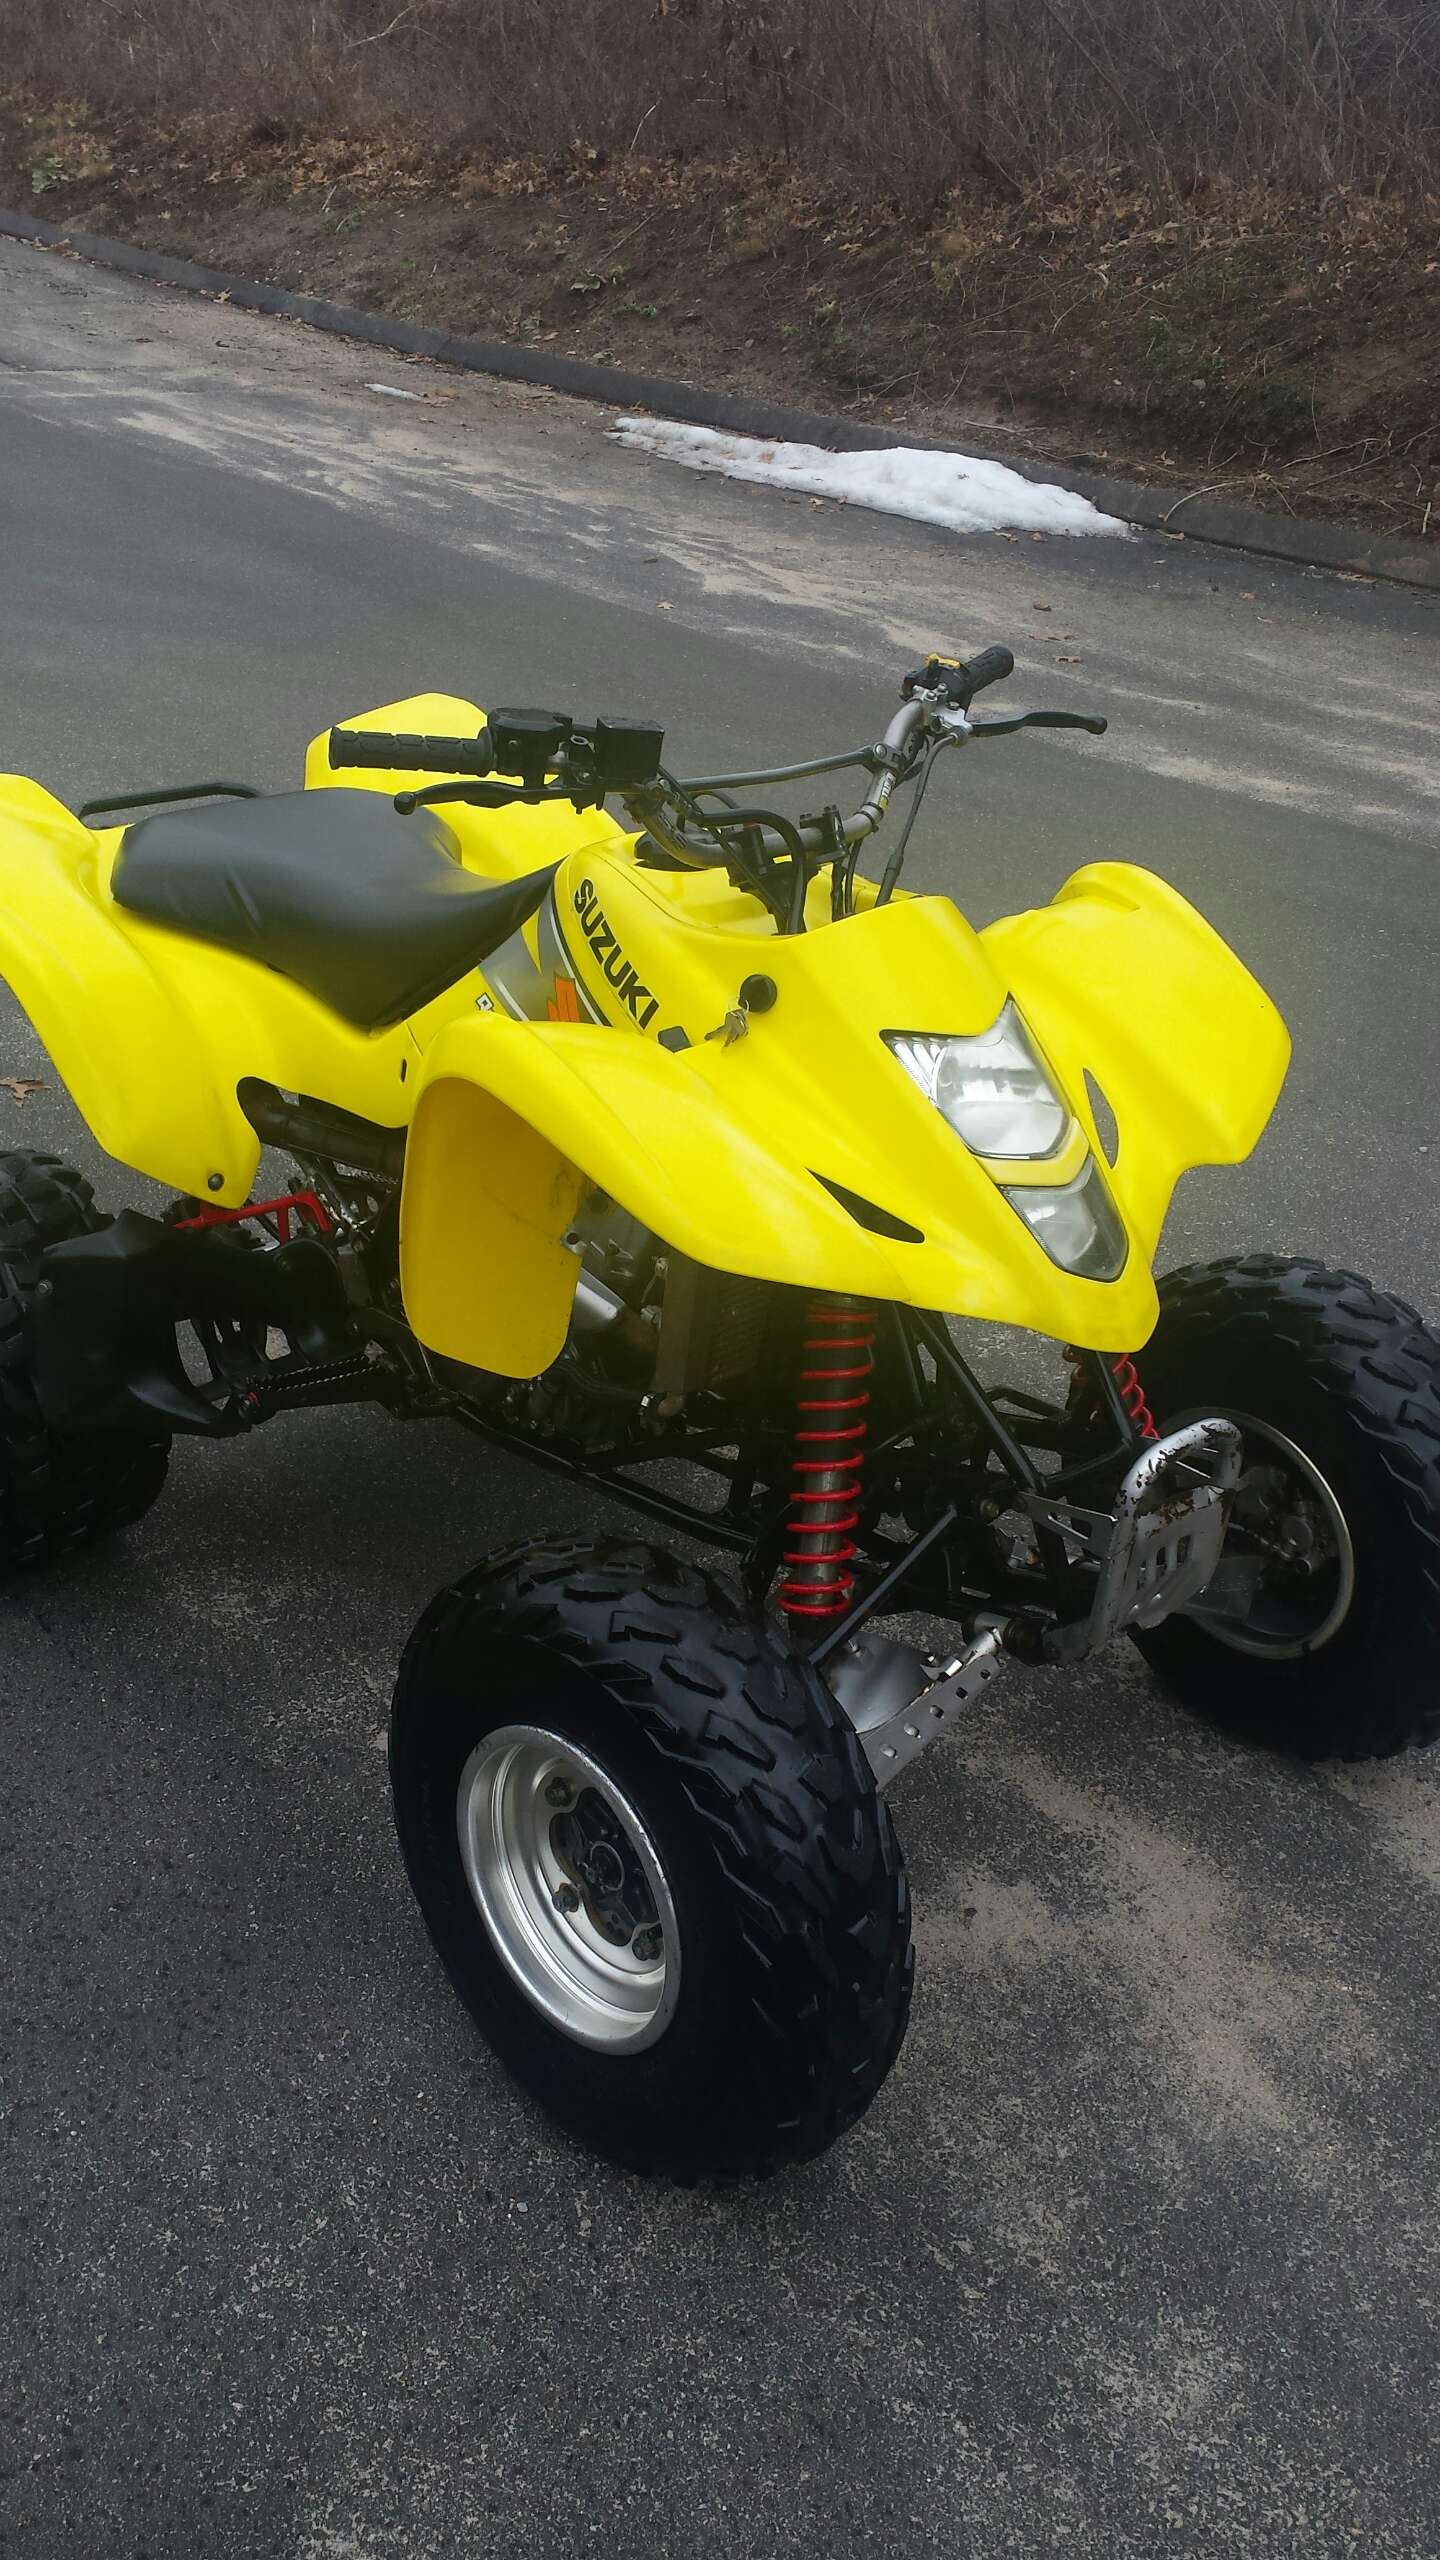 2004 suzuki ltz 400 for sale in west hartford ct 5miles buy and sell. Black Bedroom Furniture Sets. Home Design Ideas